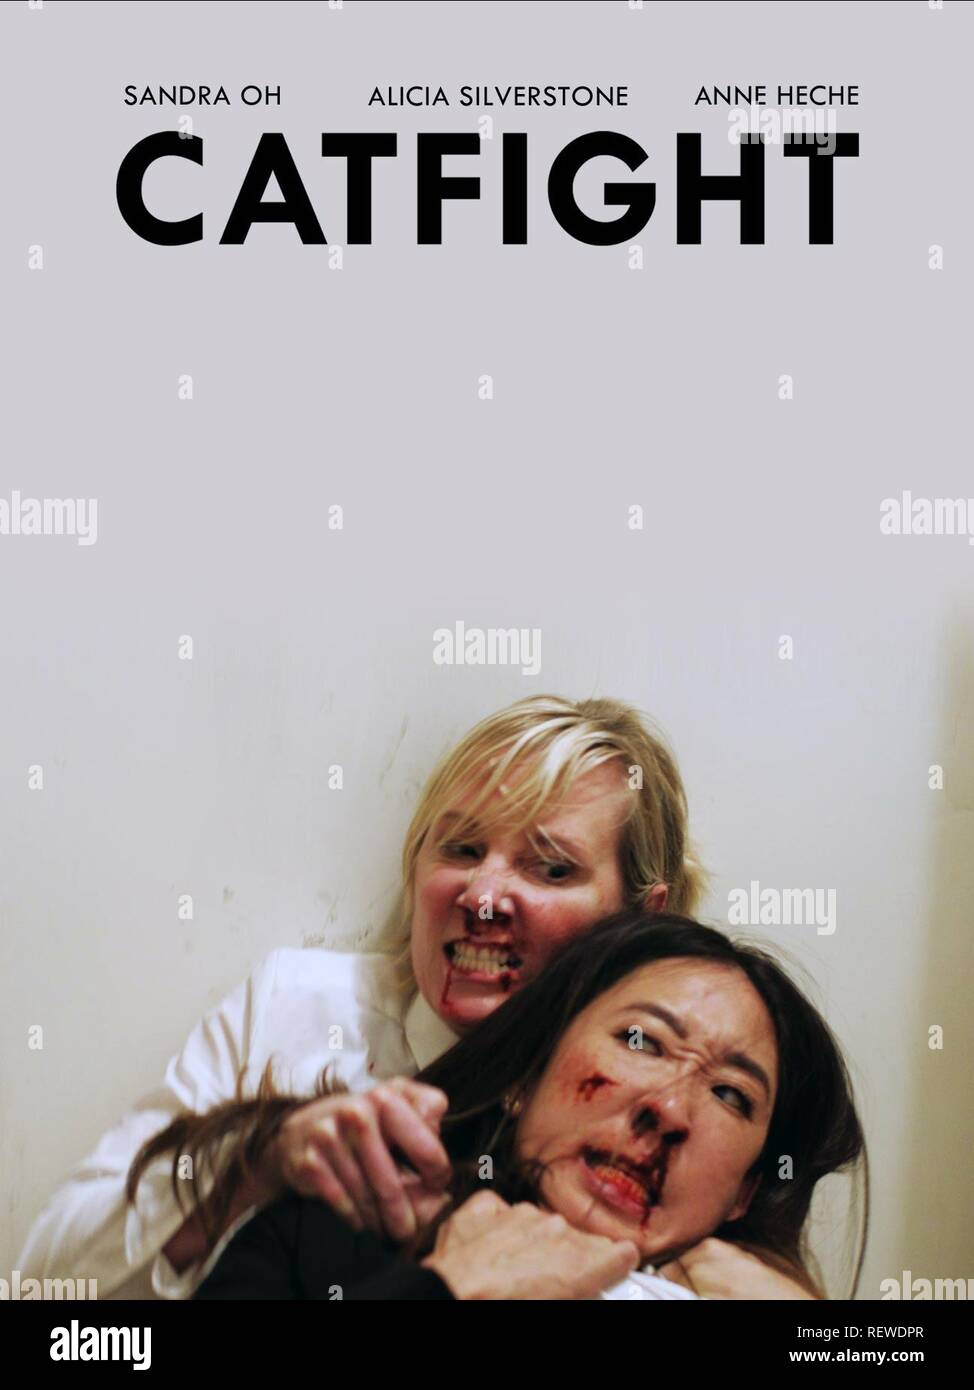 ANNE HECHE & SANDRA OH POSTER CATFIGHT (2016) - Stock Image